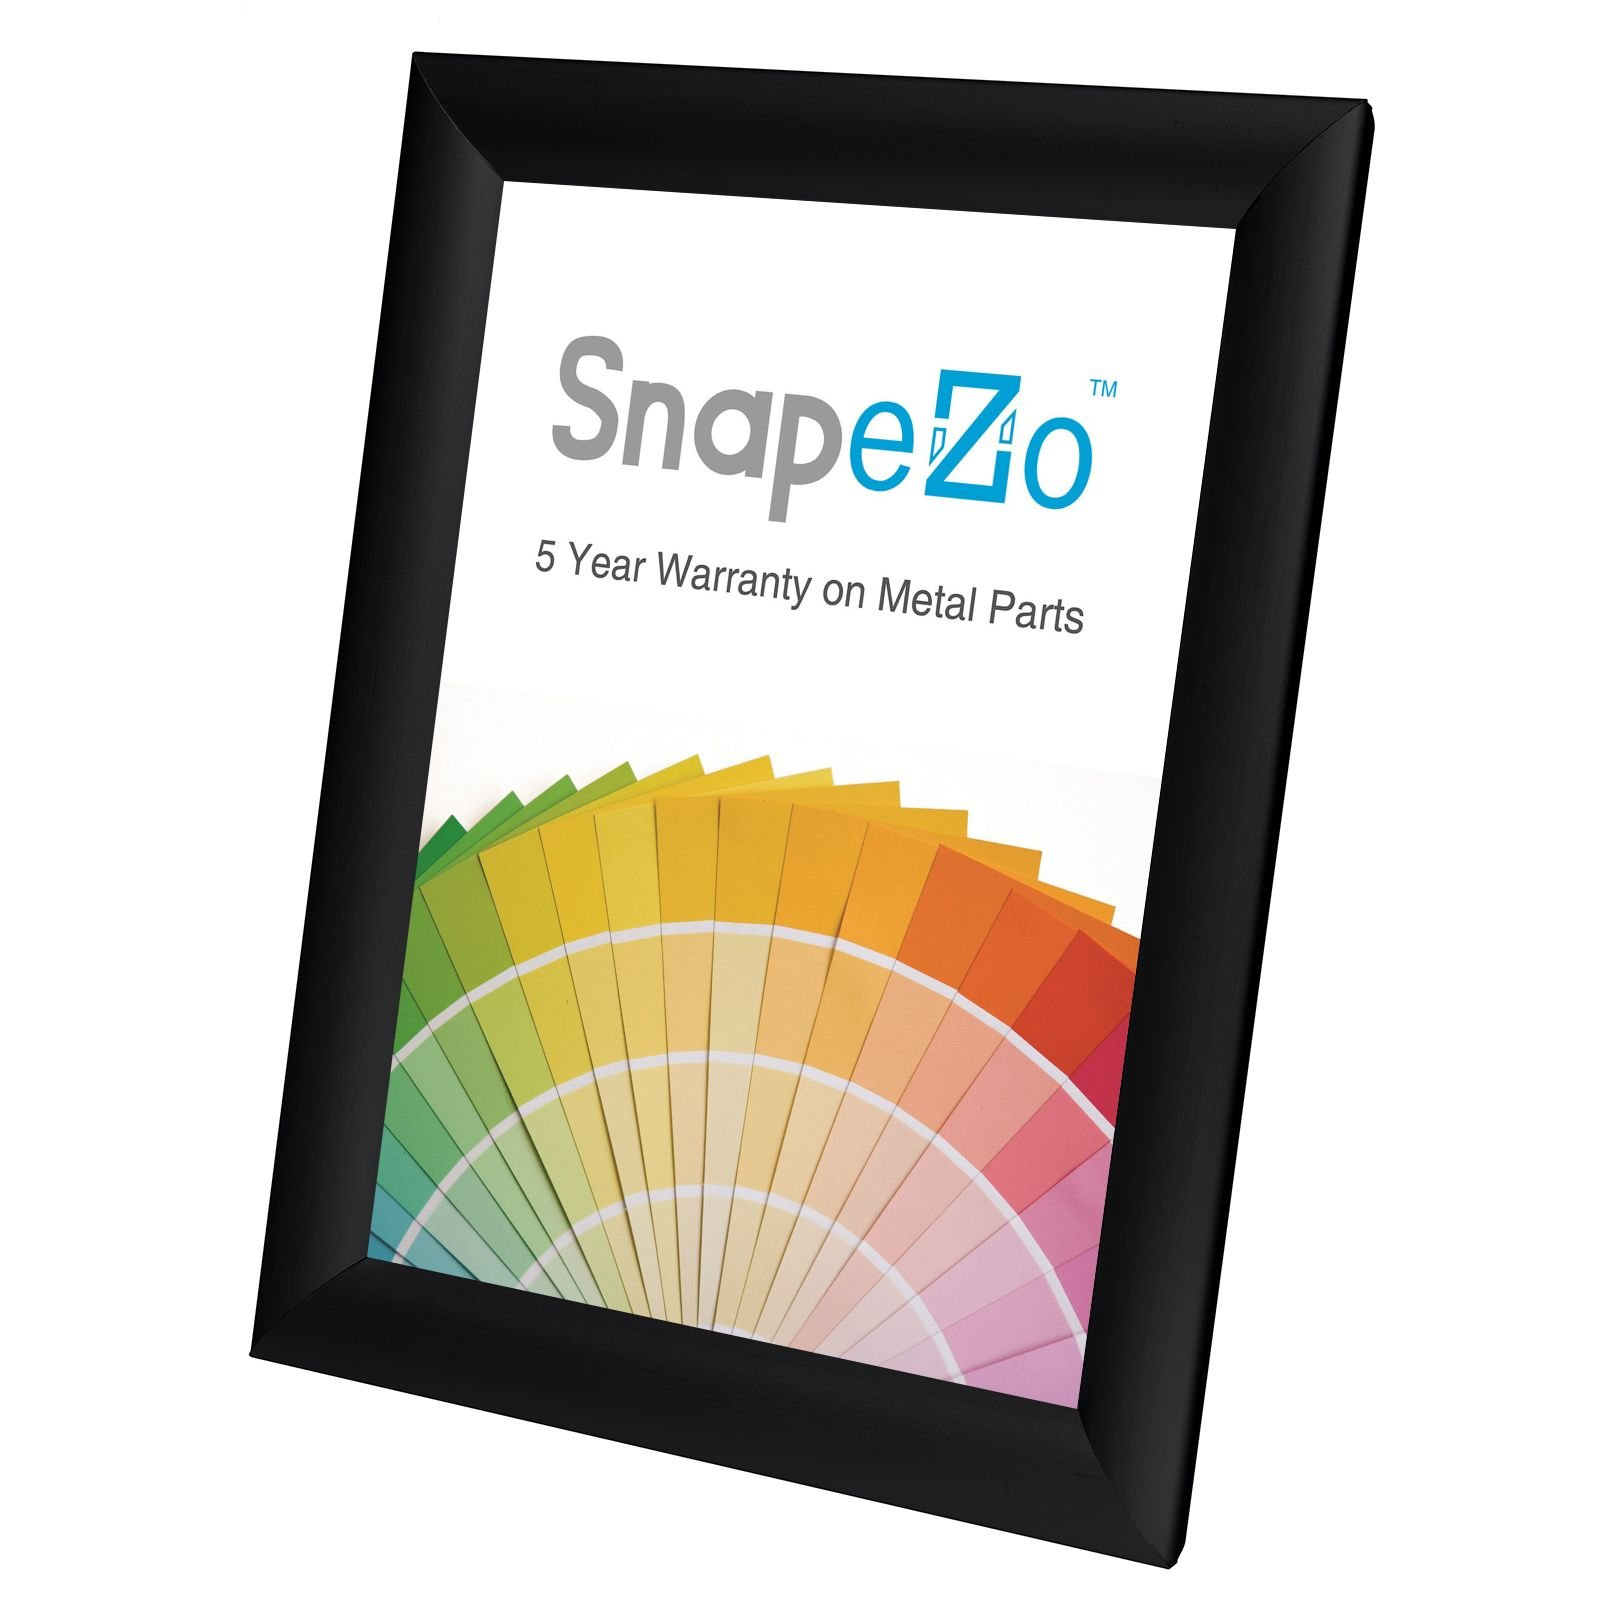 SnapeZo Weather Resistant Black Poster Frame 8.5x11 Inches, 1.38 Inch Outdoor Profile, Outdoor Poster Display Unit by SnapeZo (Image #8)